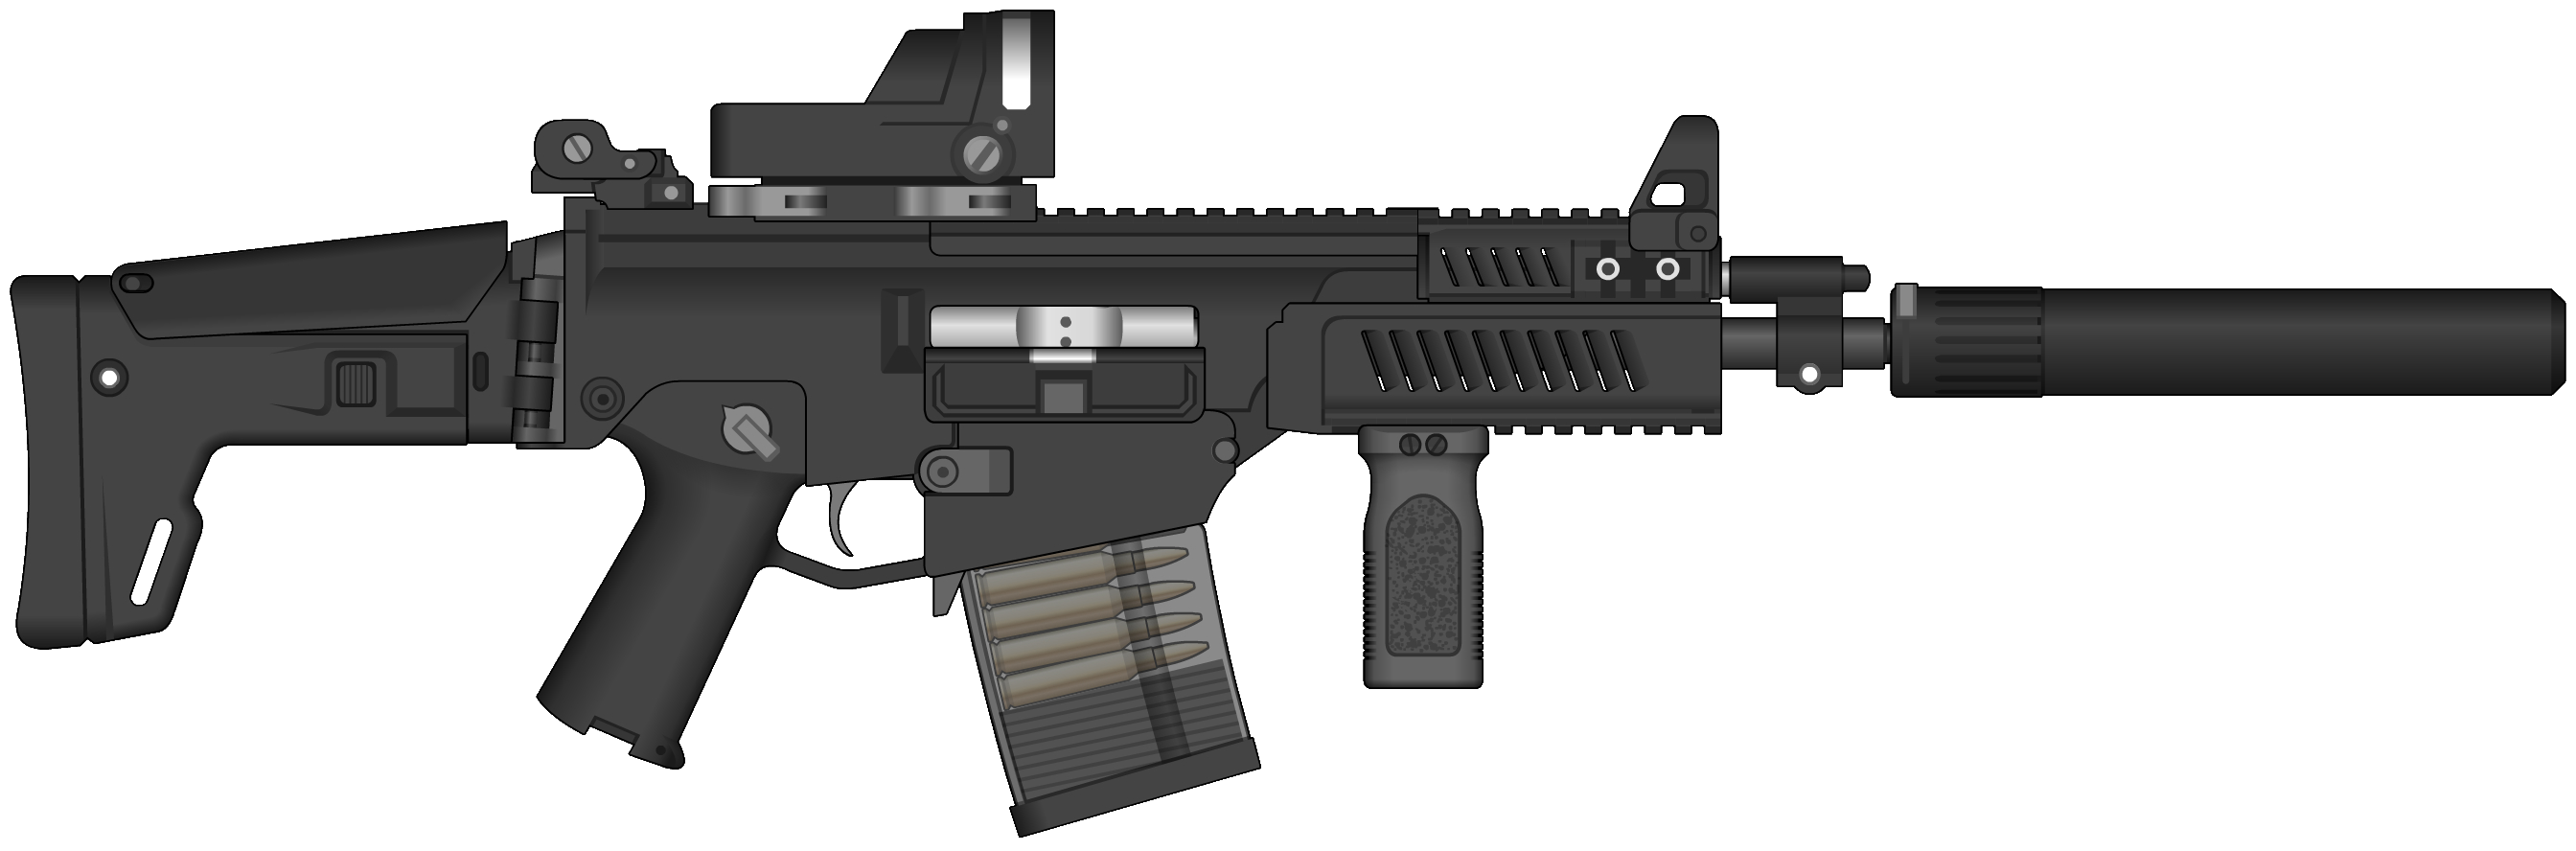 Assault rifle PNG images, free download.